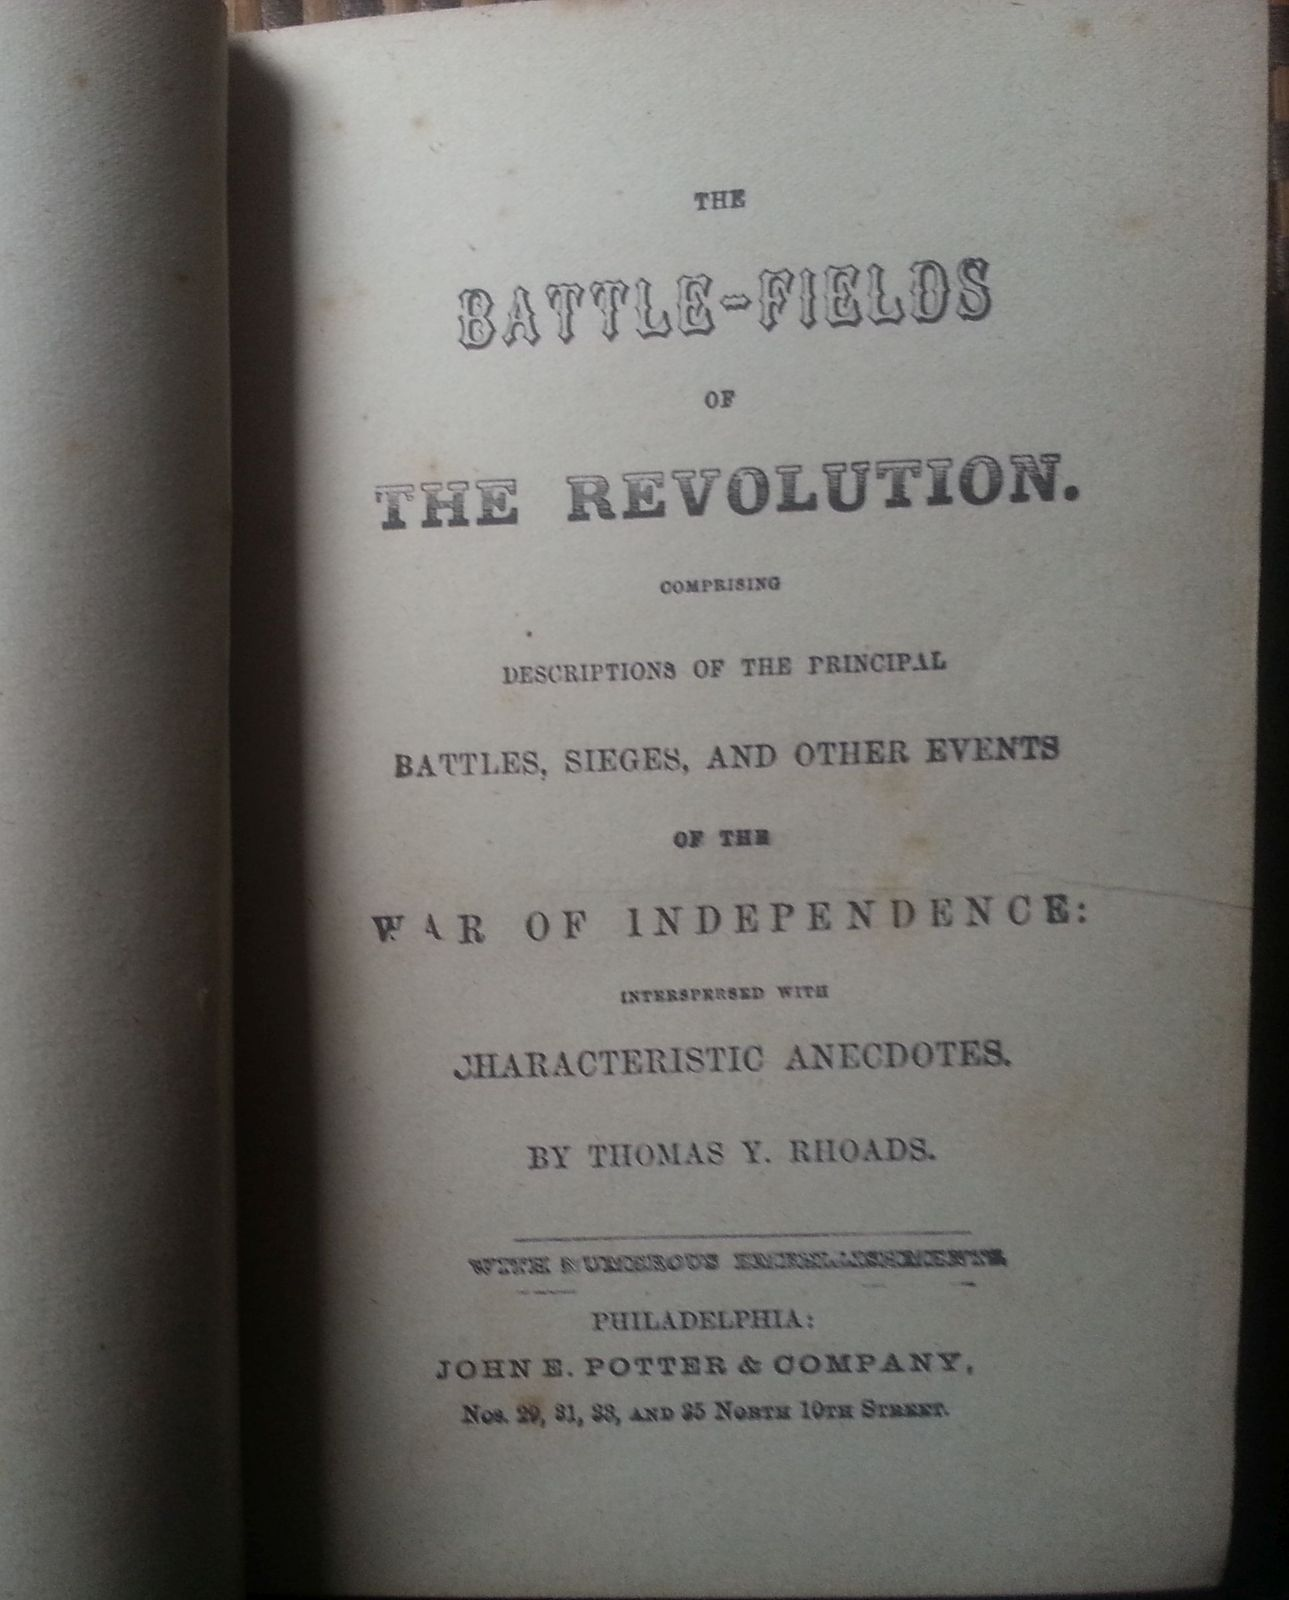 The Battle-Fields of the Revolution by Thomas Y. Rhoads HB